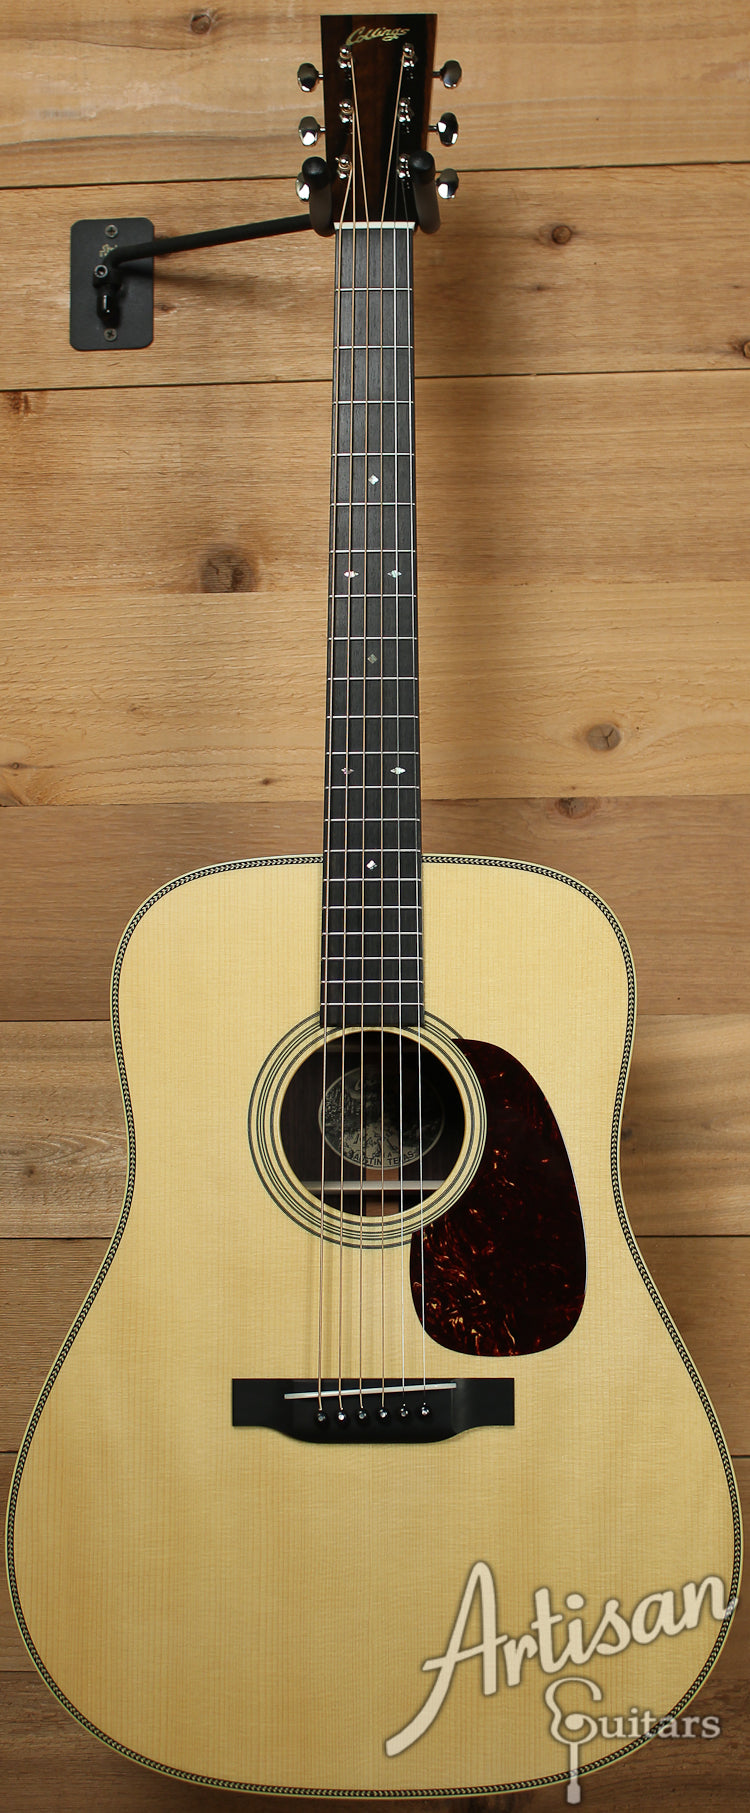 Collings D2HA Varnish Custom Adirondack Spruce and Indian Rosewood No Tongue Brace and Adirondack Bracing ID-7550